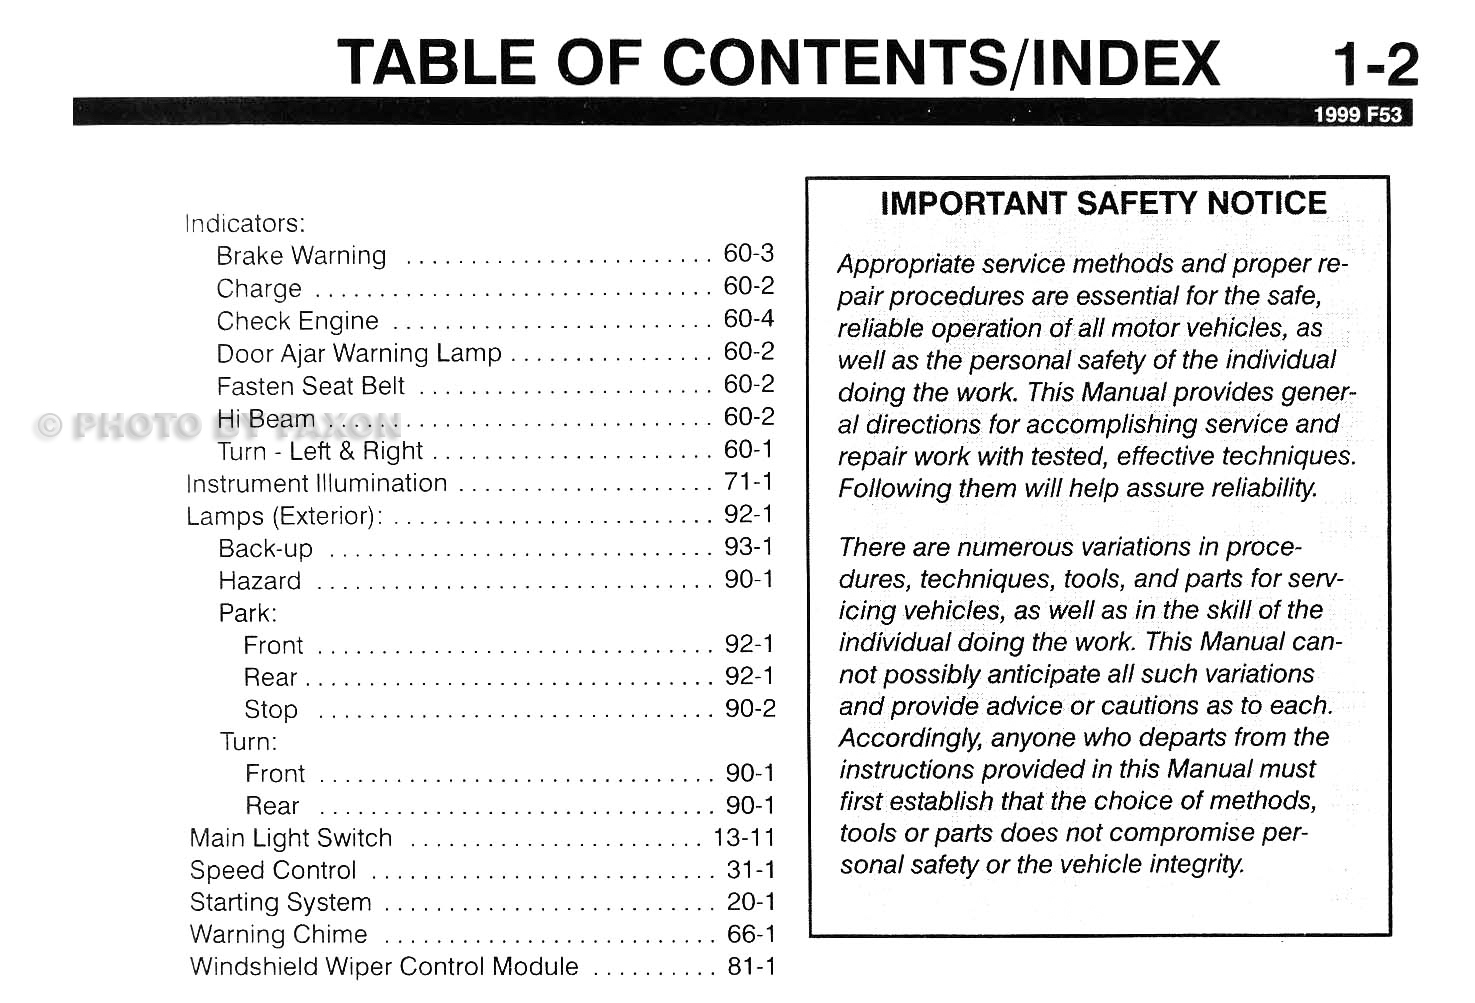 2003 Ford Ranger Chassis Wiring Diagram Library Table Of Contents Page 2